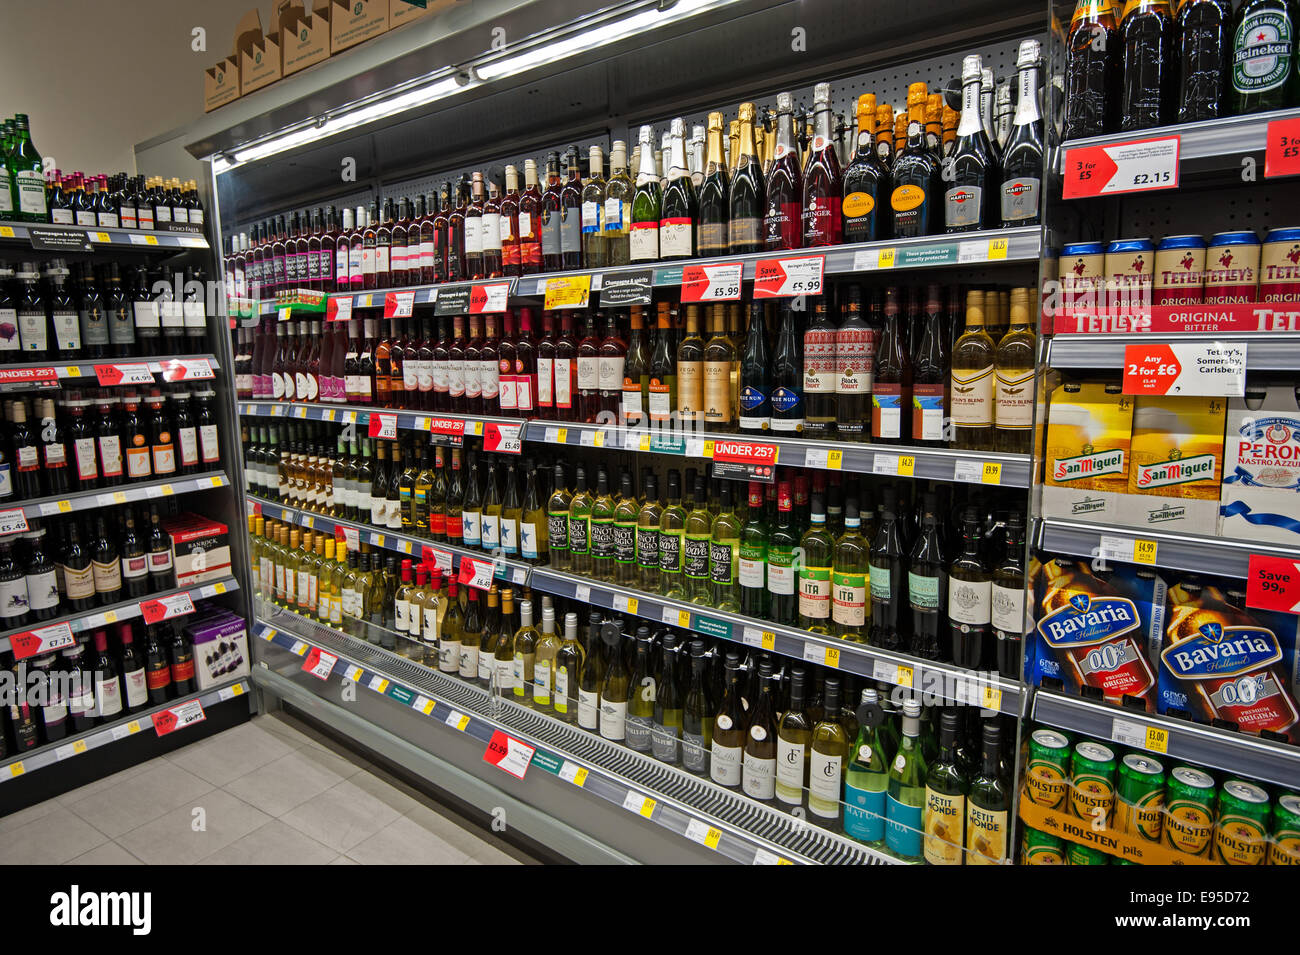 Supermarket shelves filled with alcohol - Stock Image